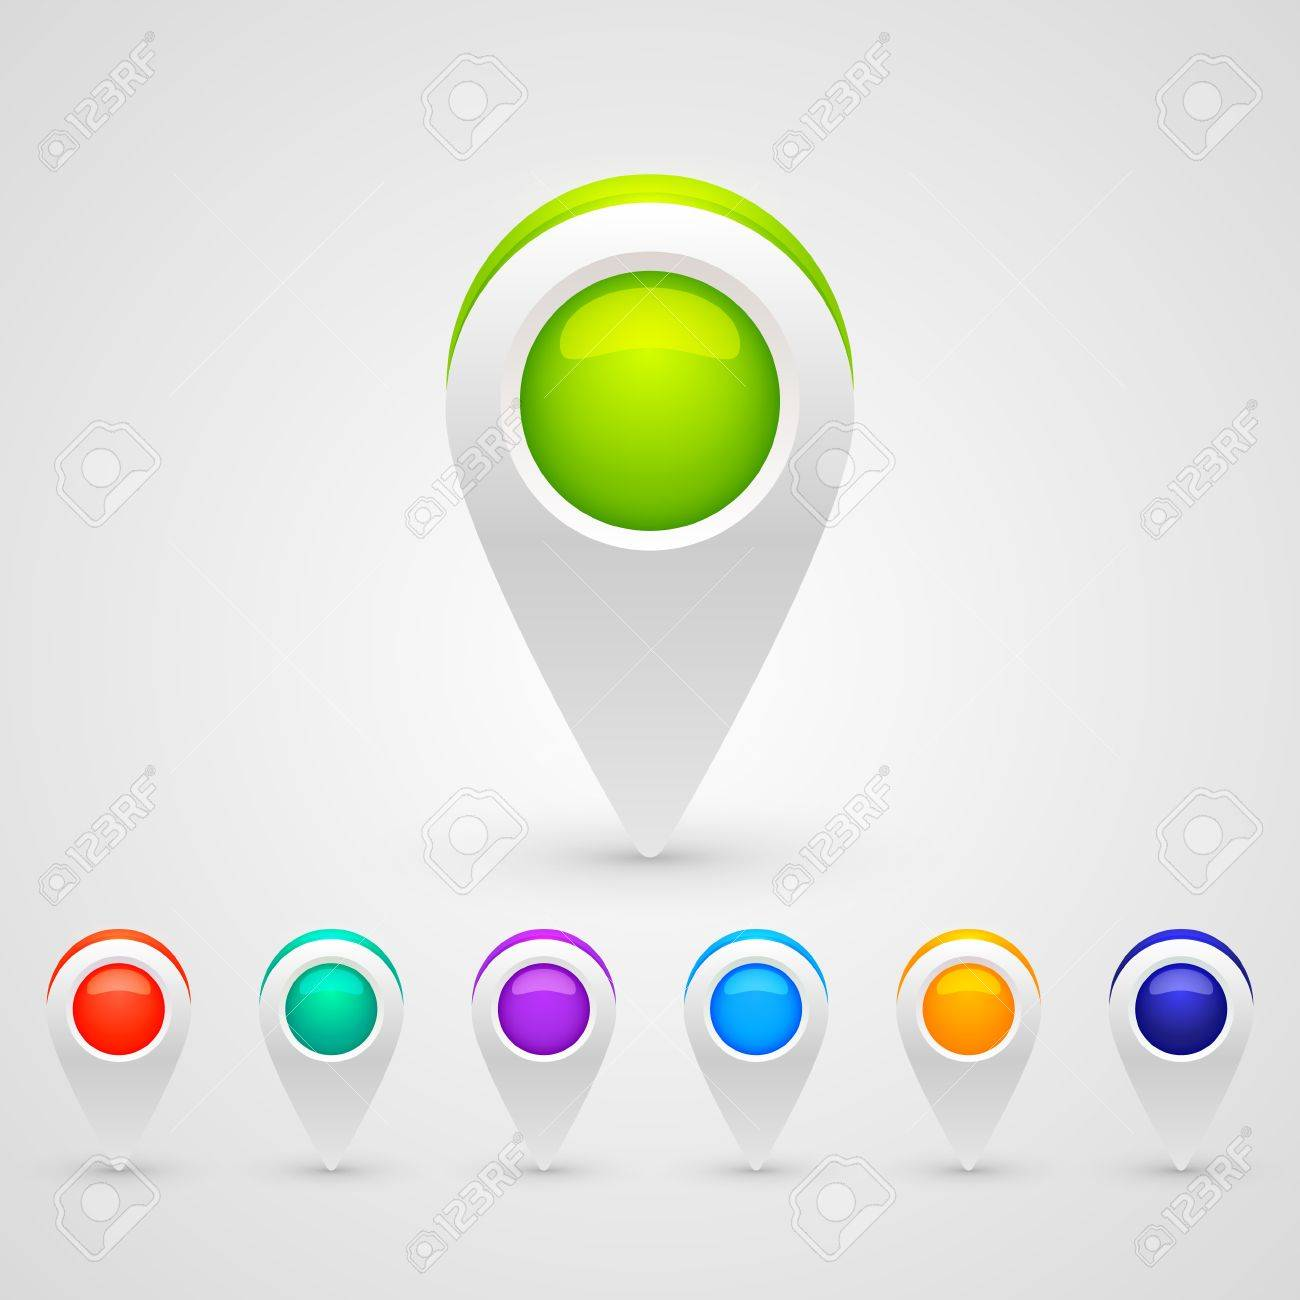 color GPS pin icons for infographic Stock Vector - 17499997